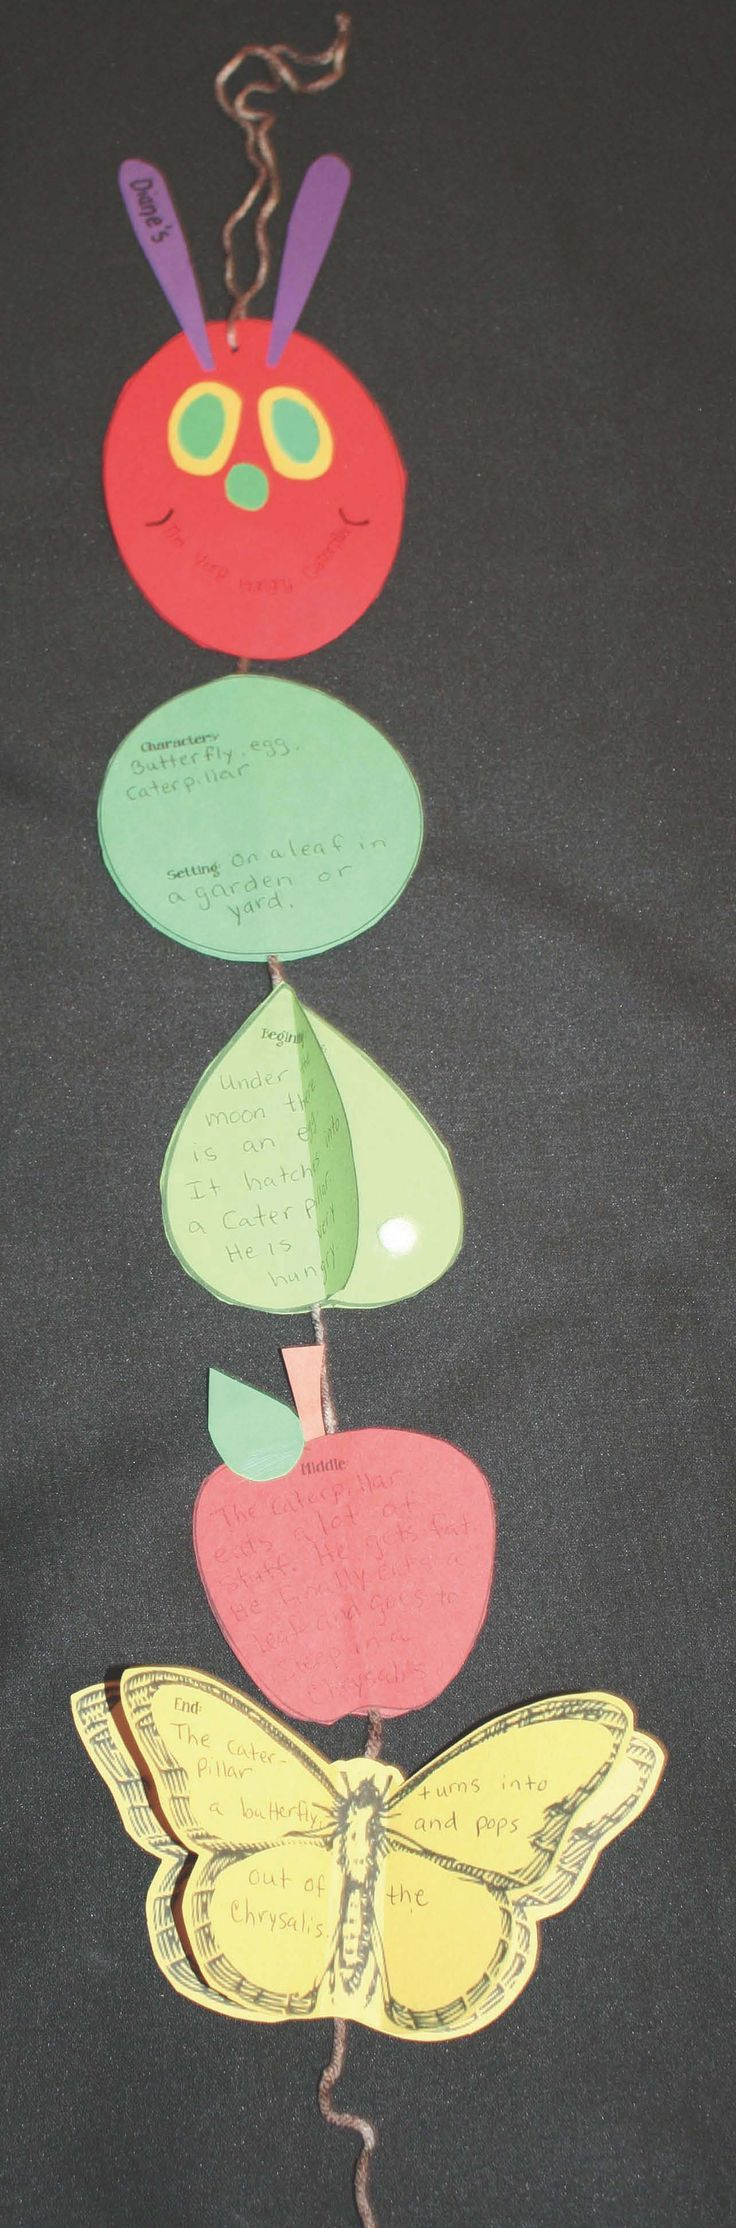 The Tiny Seed Activities for the Preschool or Elementary Classroom